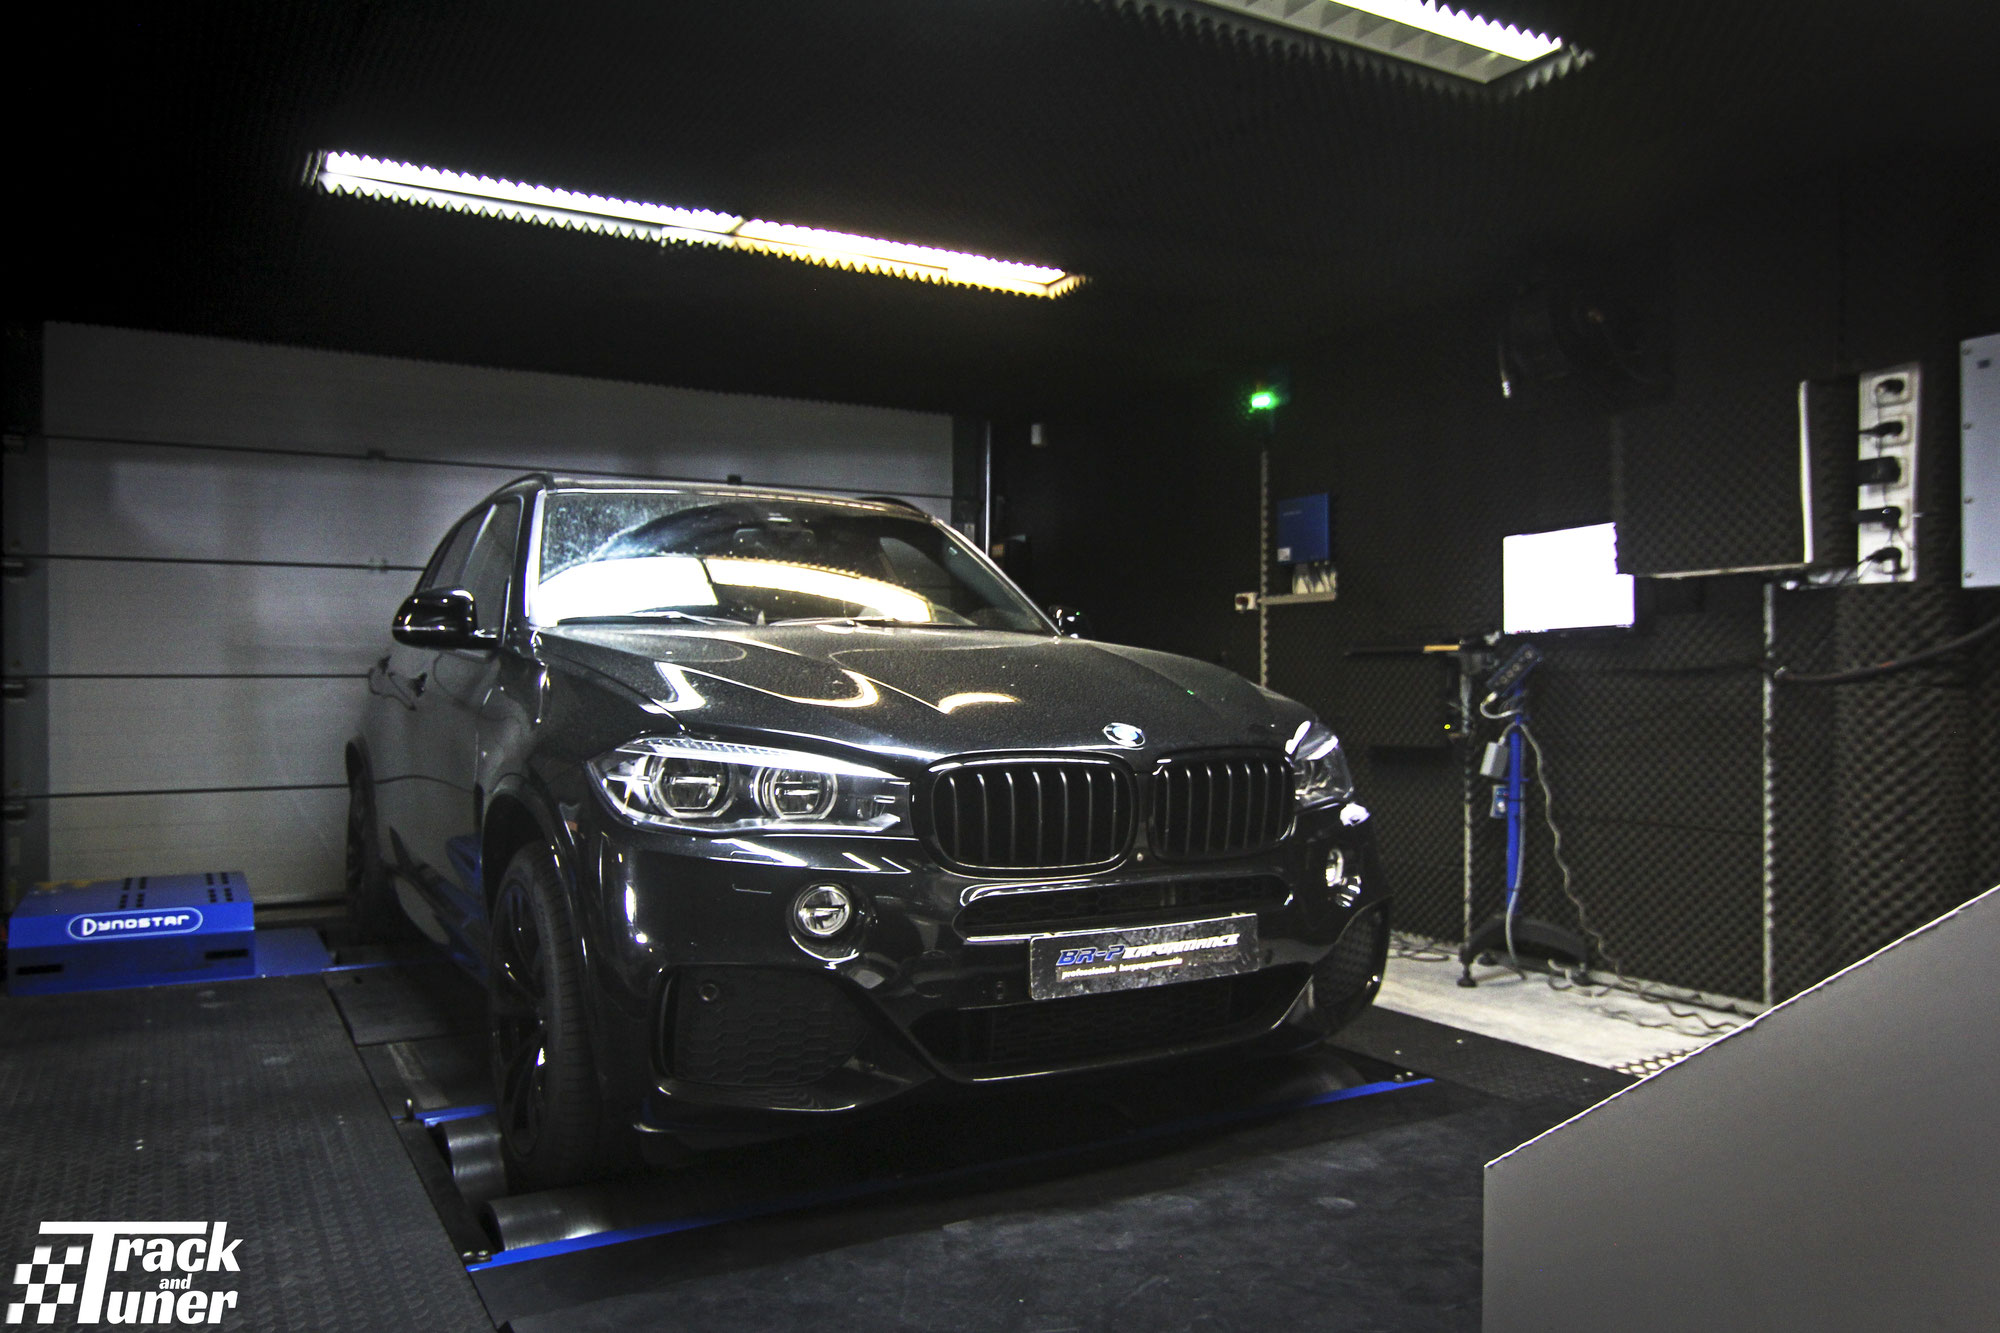 Project Car: Tuning the BMW X5 F15 Trailer King